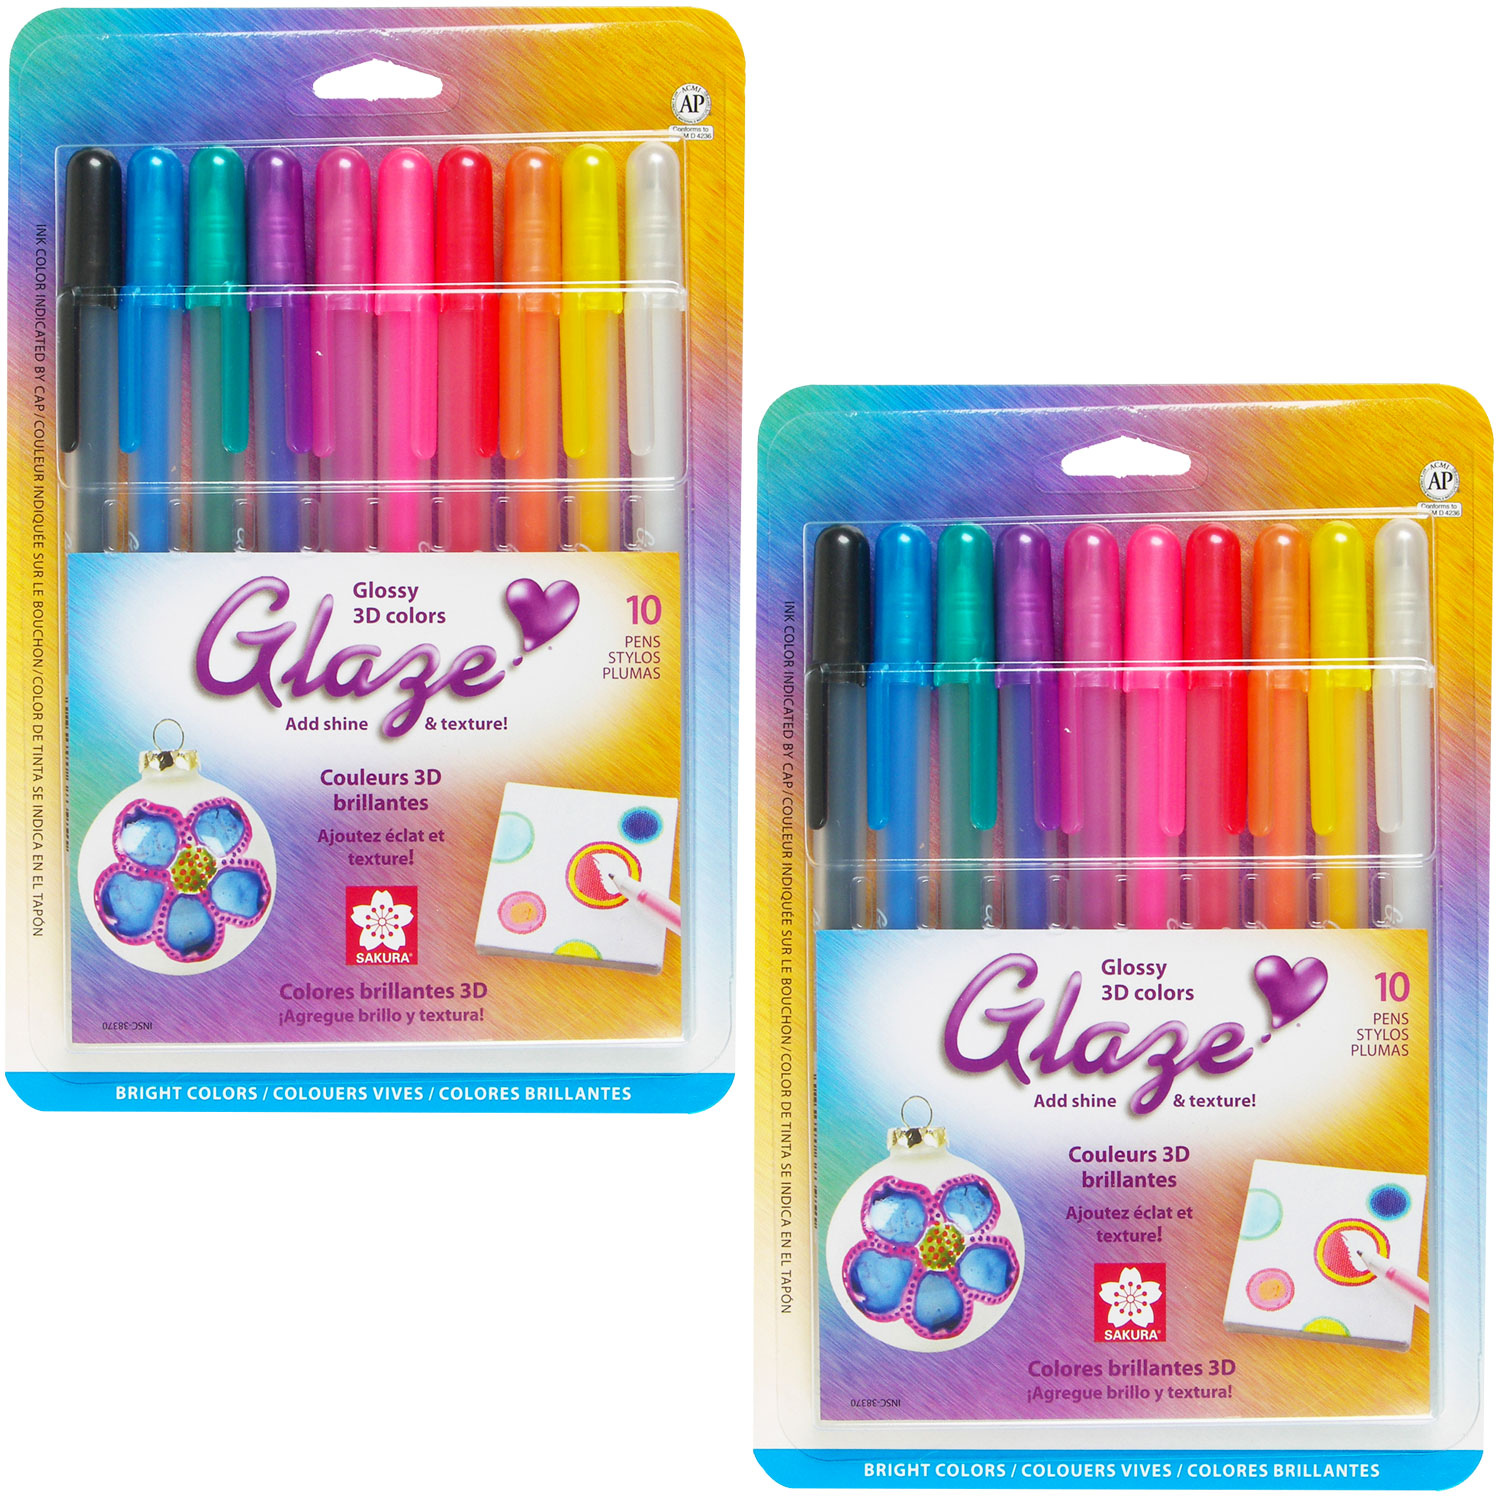 Sakura Glaze 3D Embossed - 2 Sets of the 10pk Bright Gloss Color Pen Set